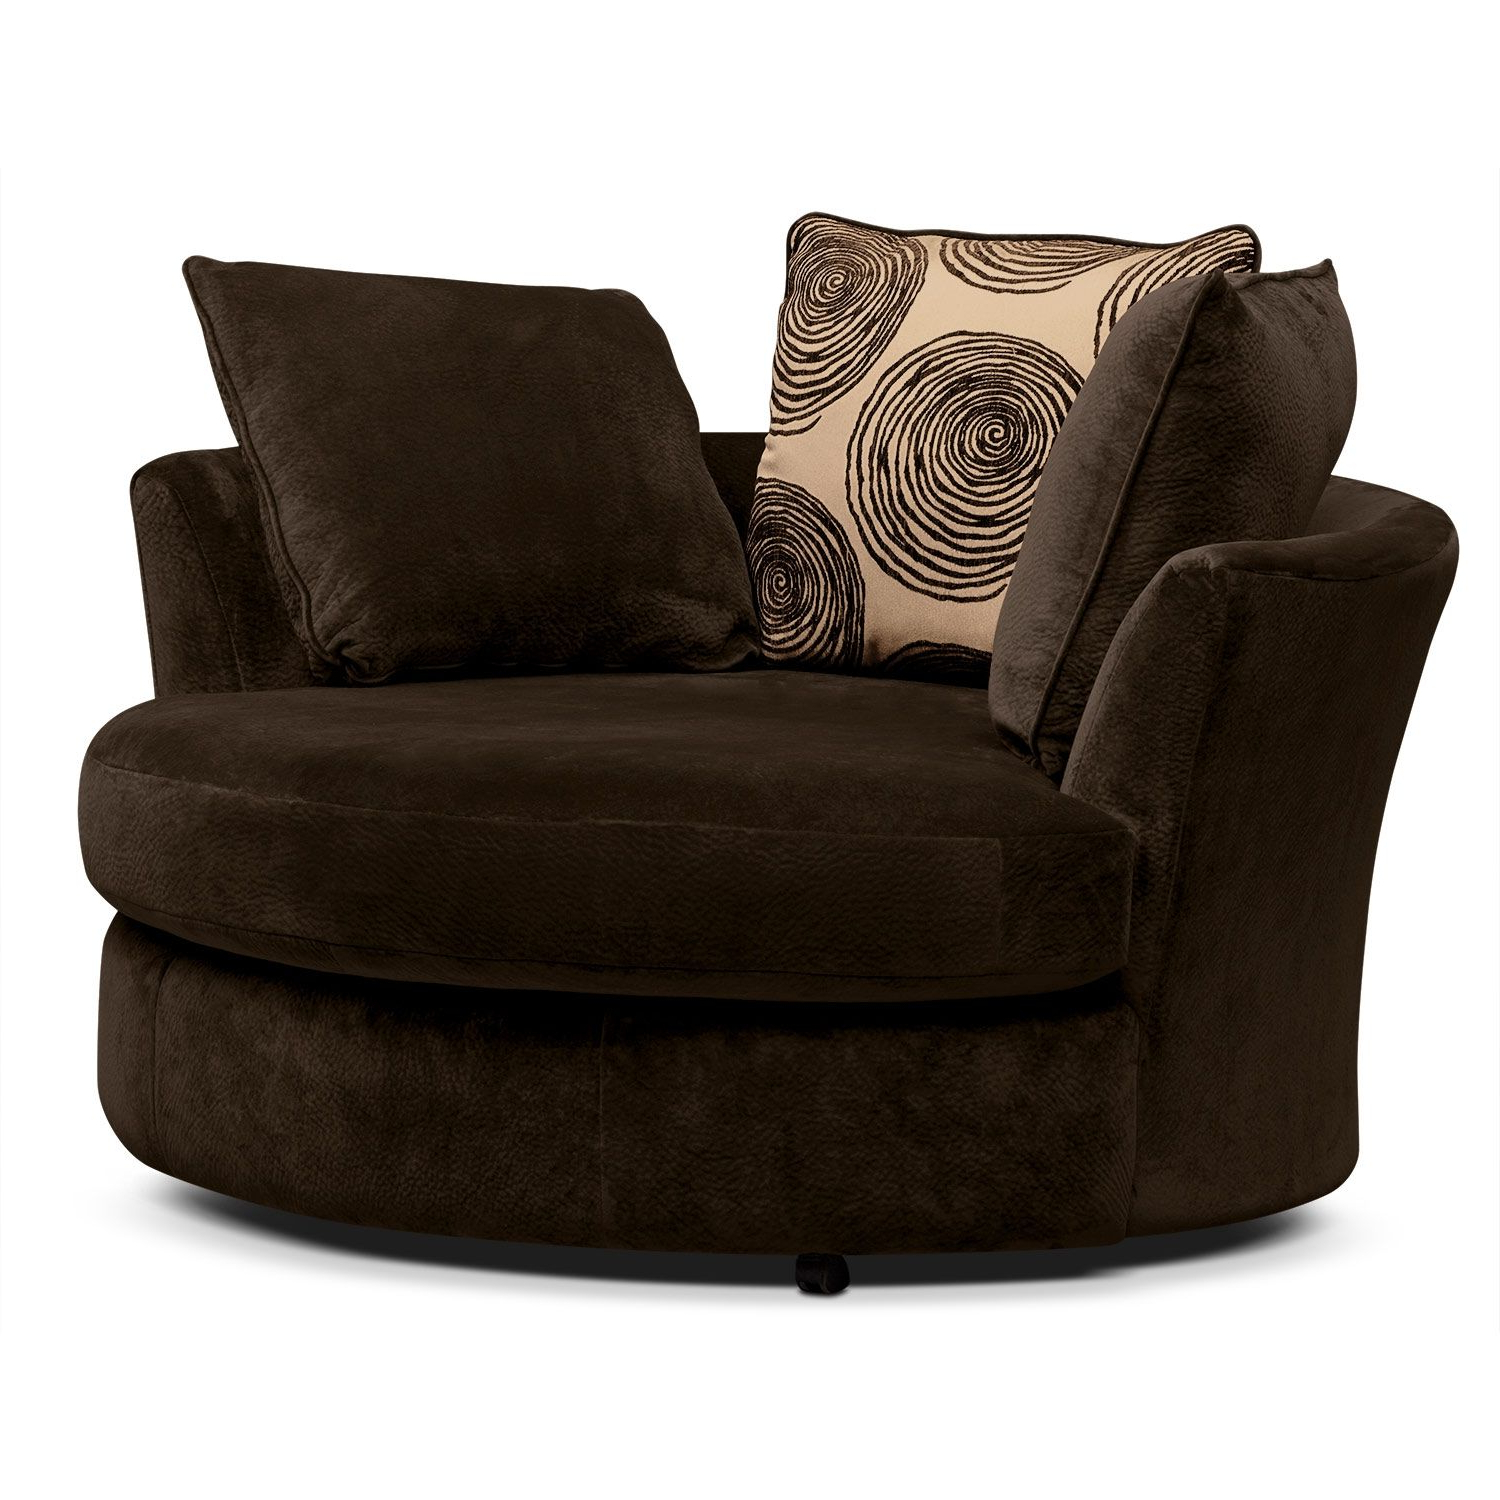 Home Decor Within Round Sofa Chairs (View 12 of 20)